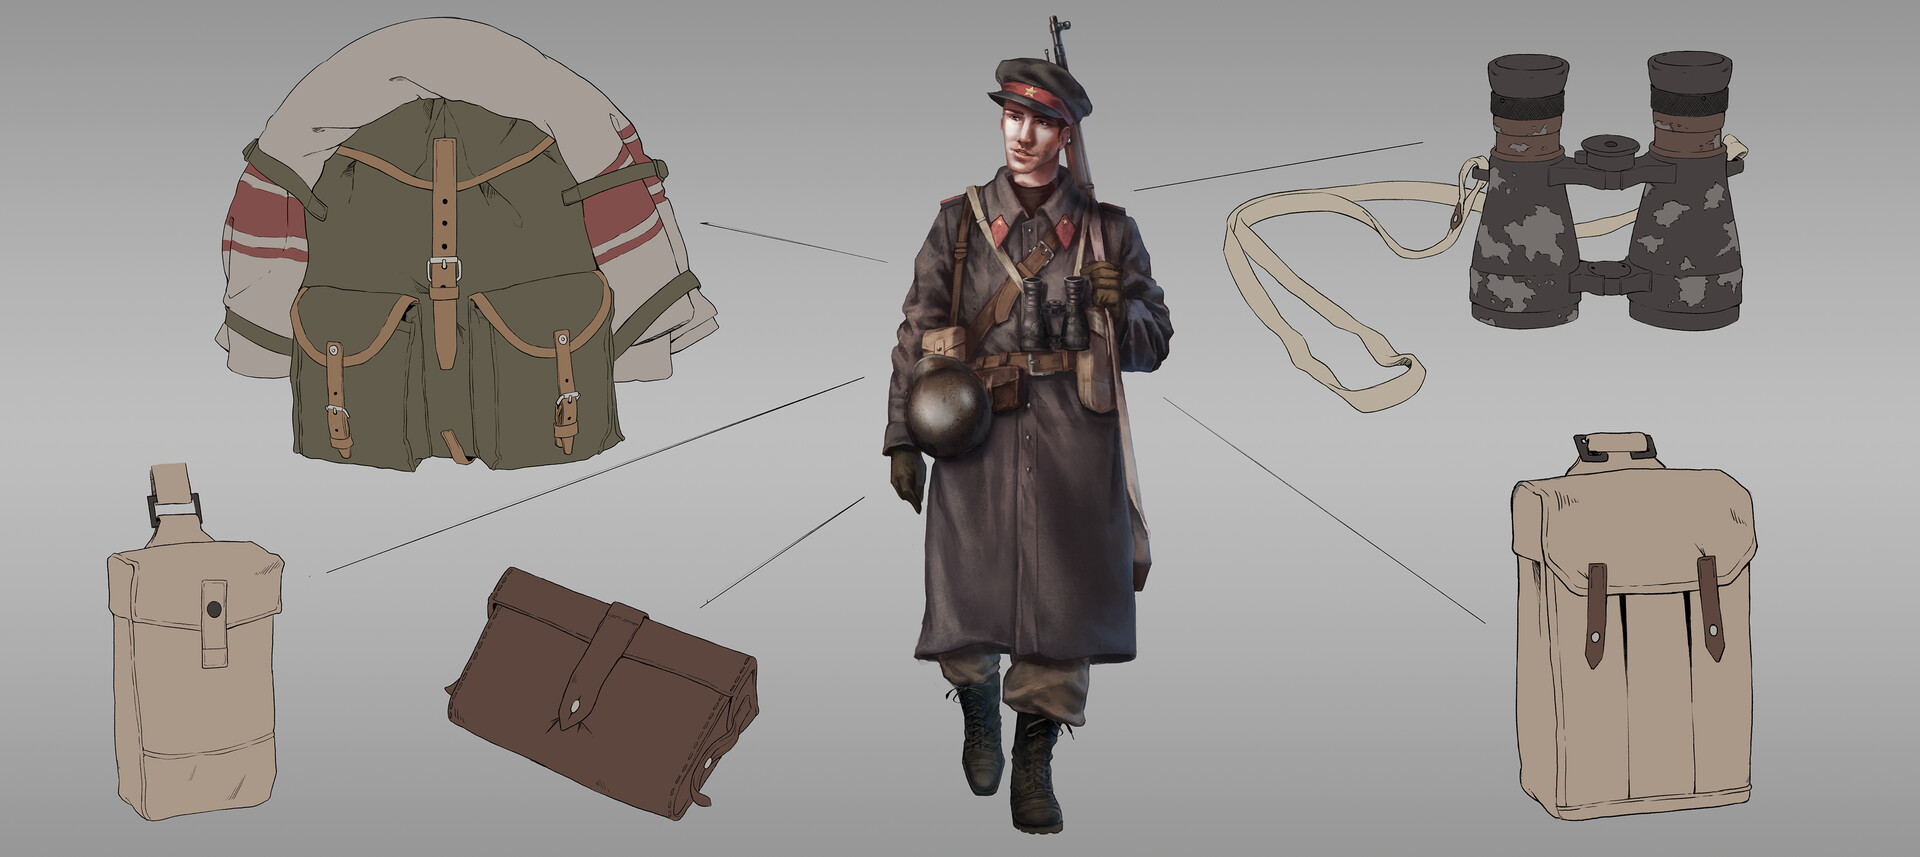 Soviet/USSR details design breakdown. For this one I wanted to have a more offensive solider in mind, but still give him a lot of utility equipment.